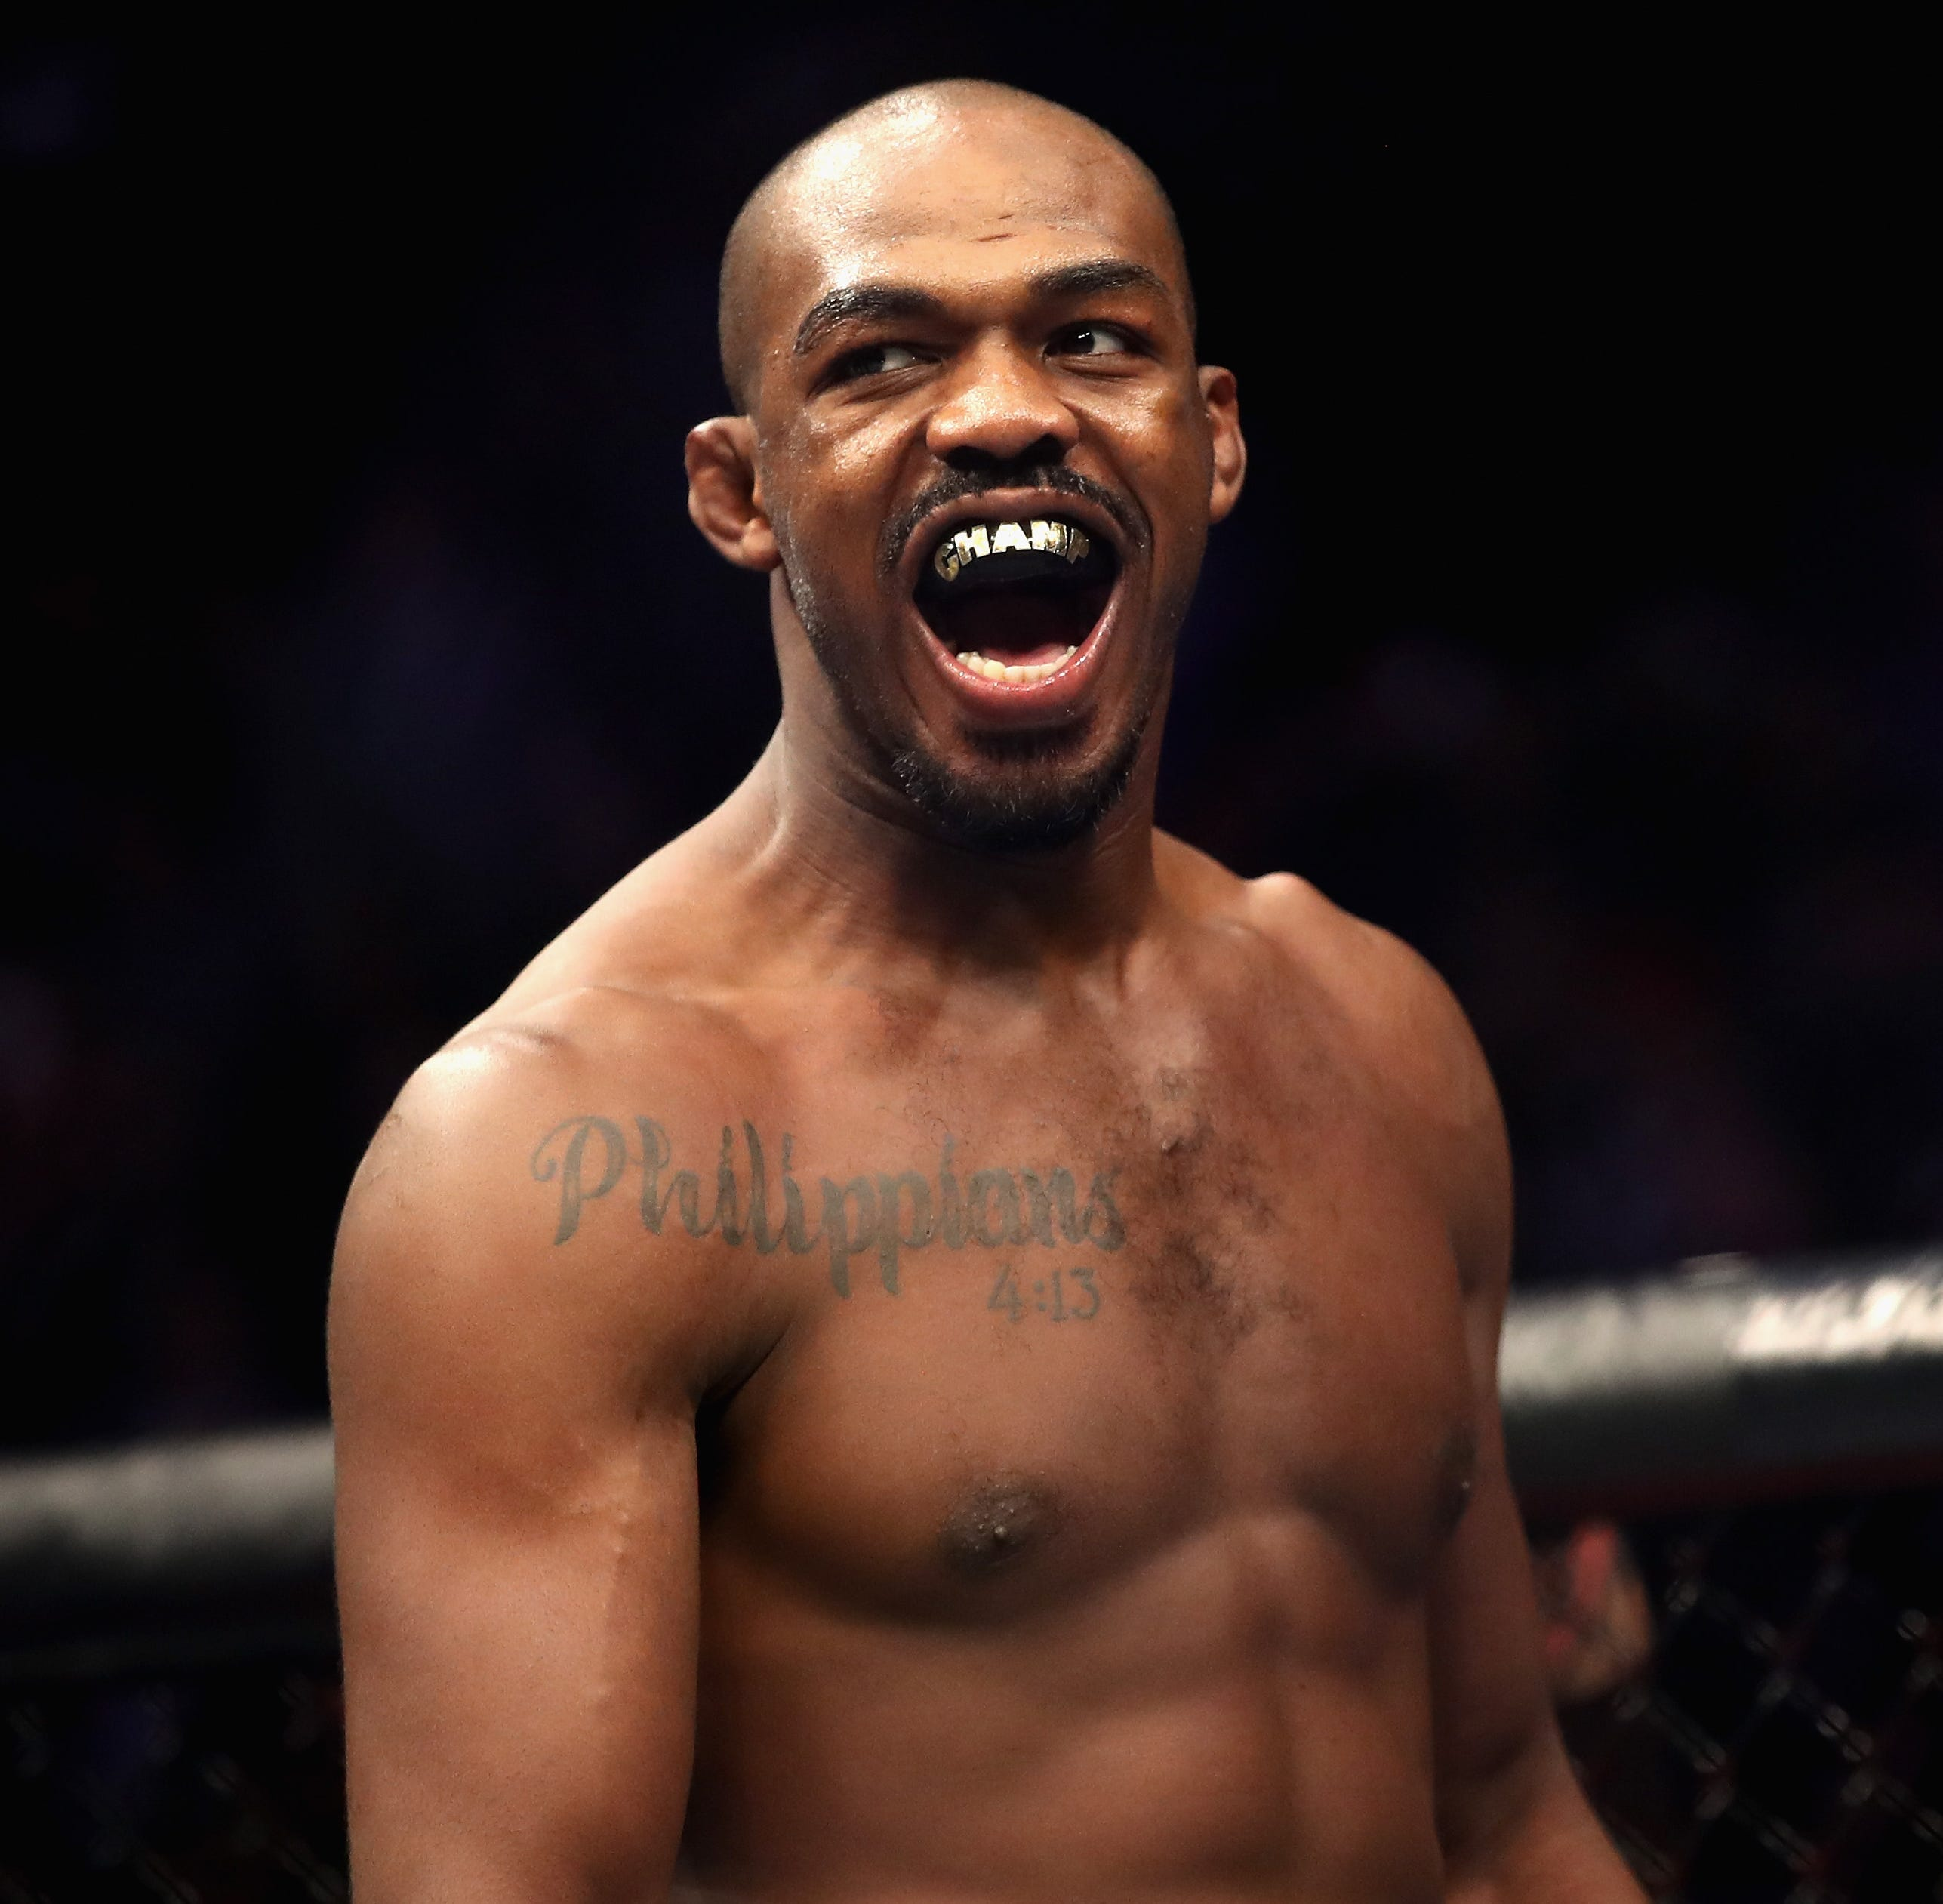 Watch UFC champion Jon Jones choke out a willing fan in Germany